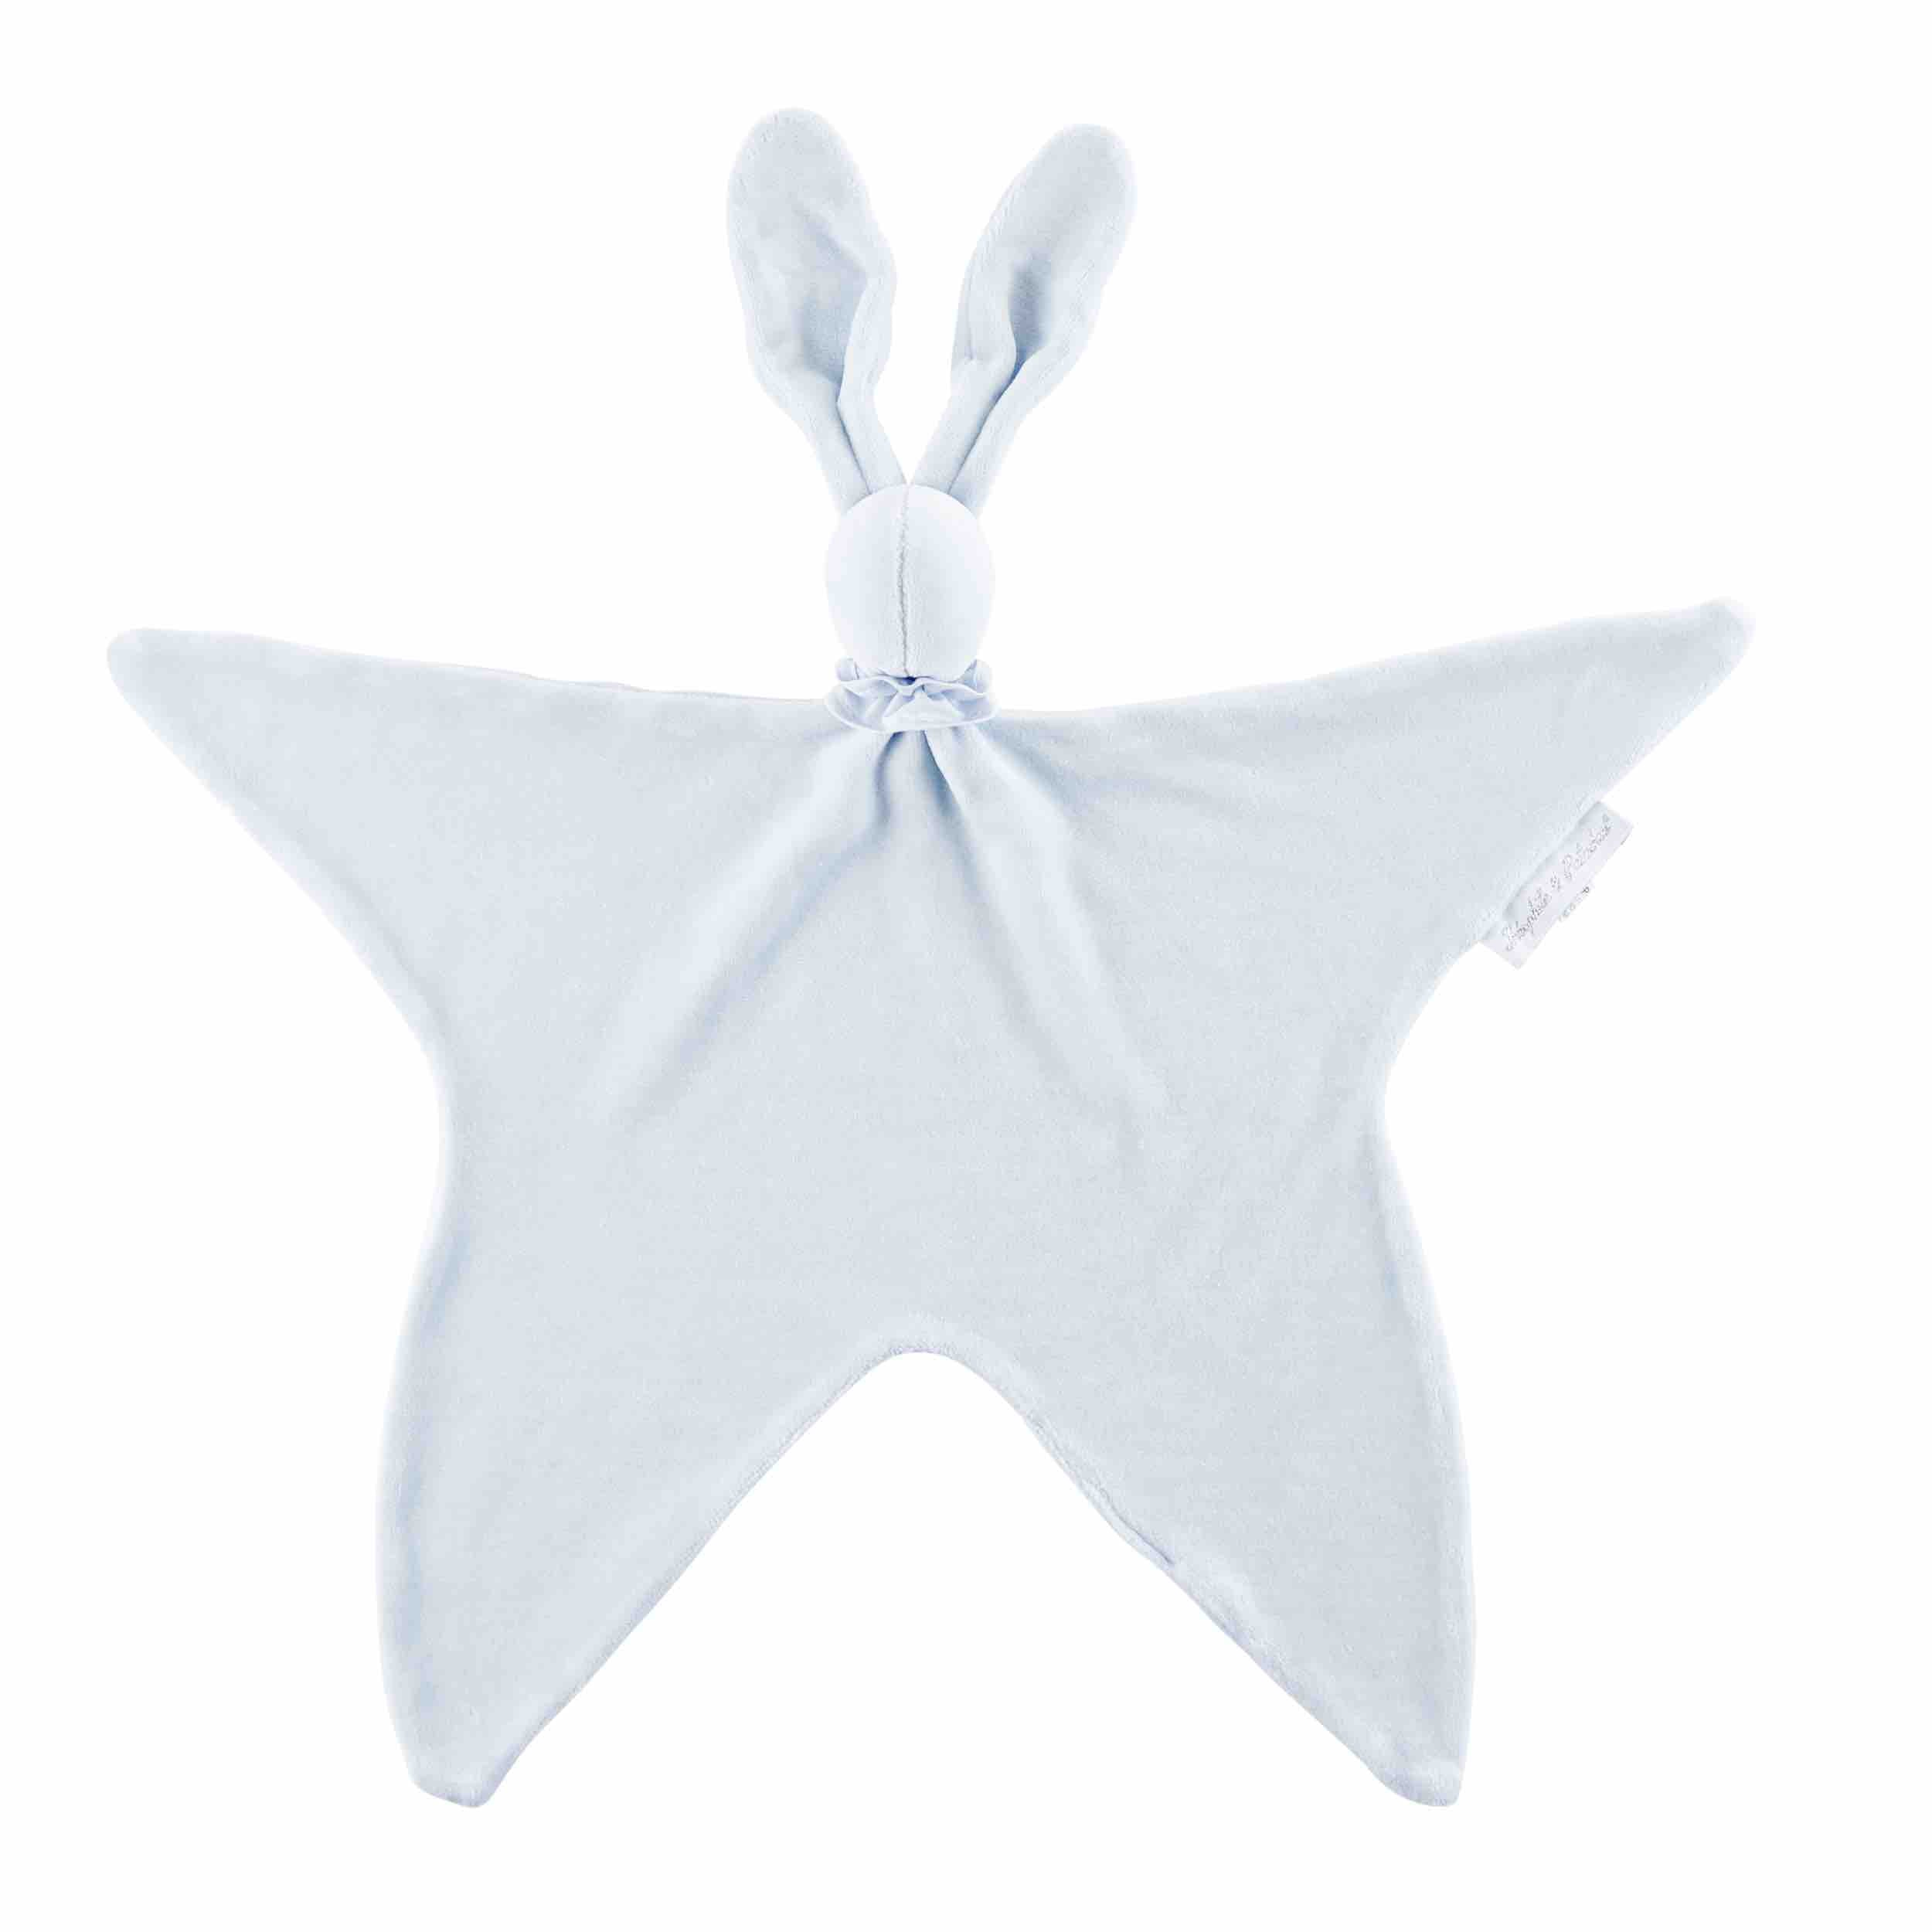 Theophile & Patachou Doudou Soft Rabbit - Royal Blue